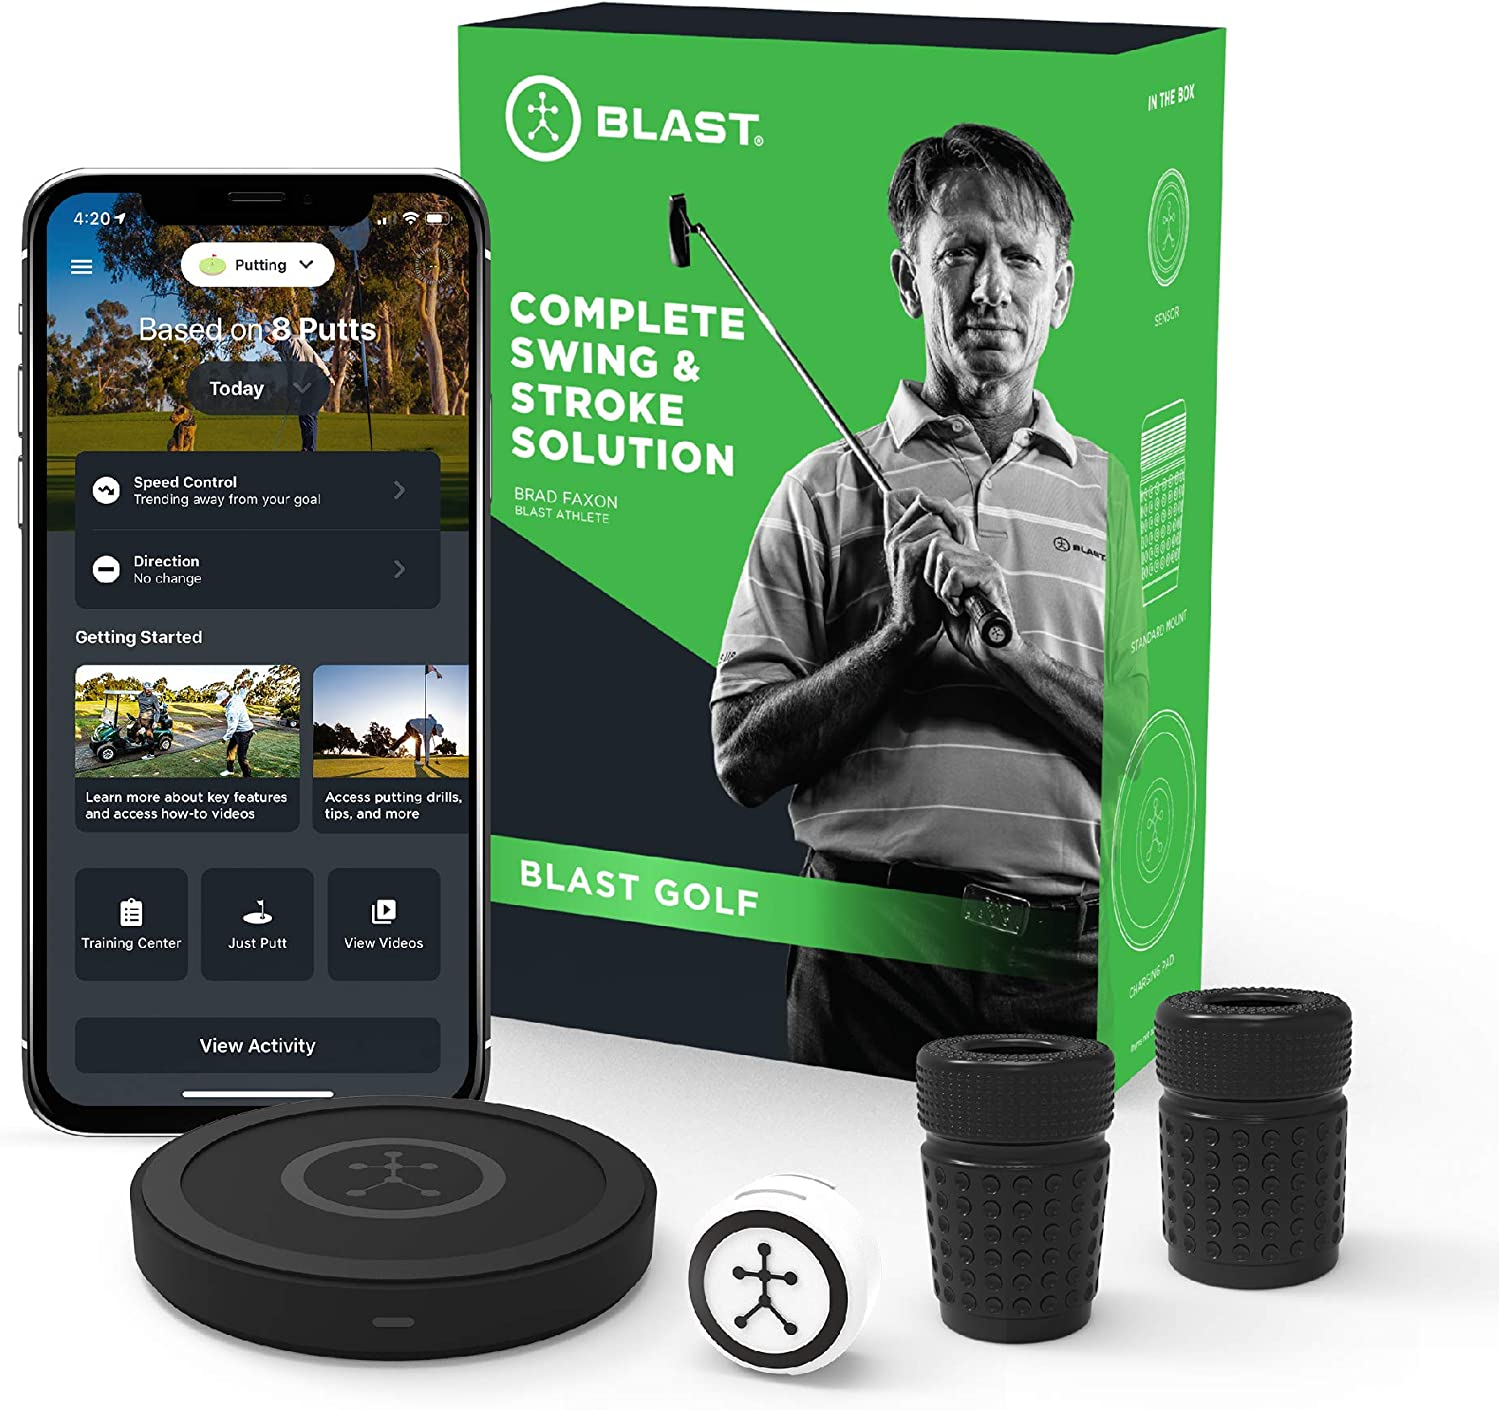 Blast Golf Swing Analyzer | Captures Swing and Stroke Metrics | Slo-Mo Video Capture | App Enabled, iOS and Android Compatible | Putting, Short Game, Full Swing